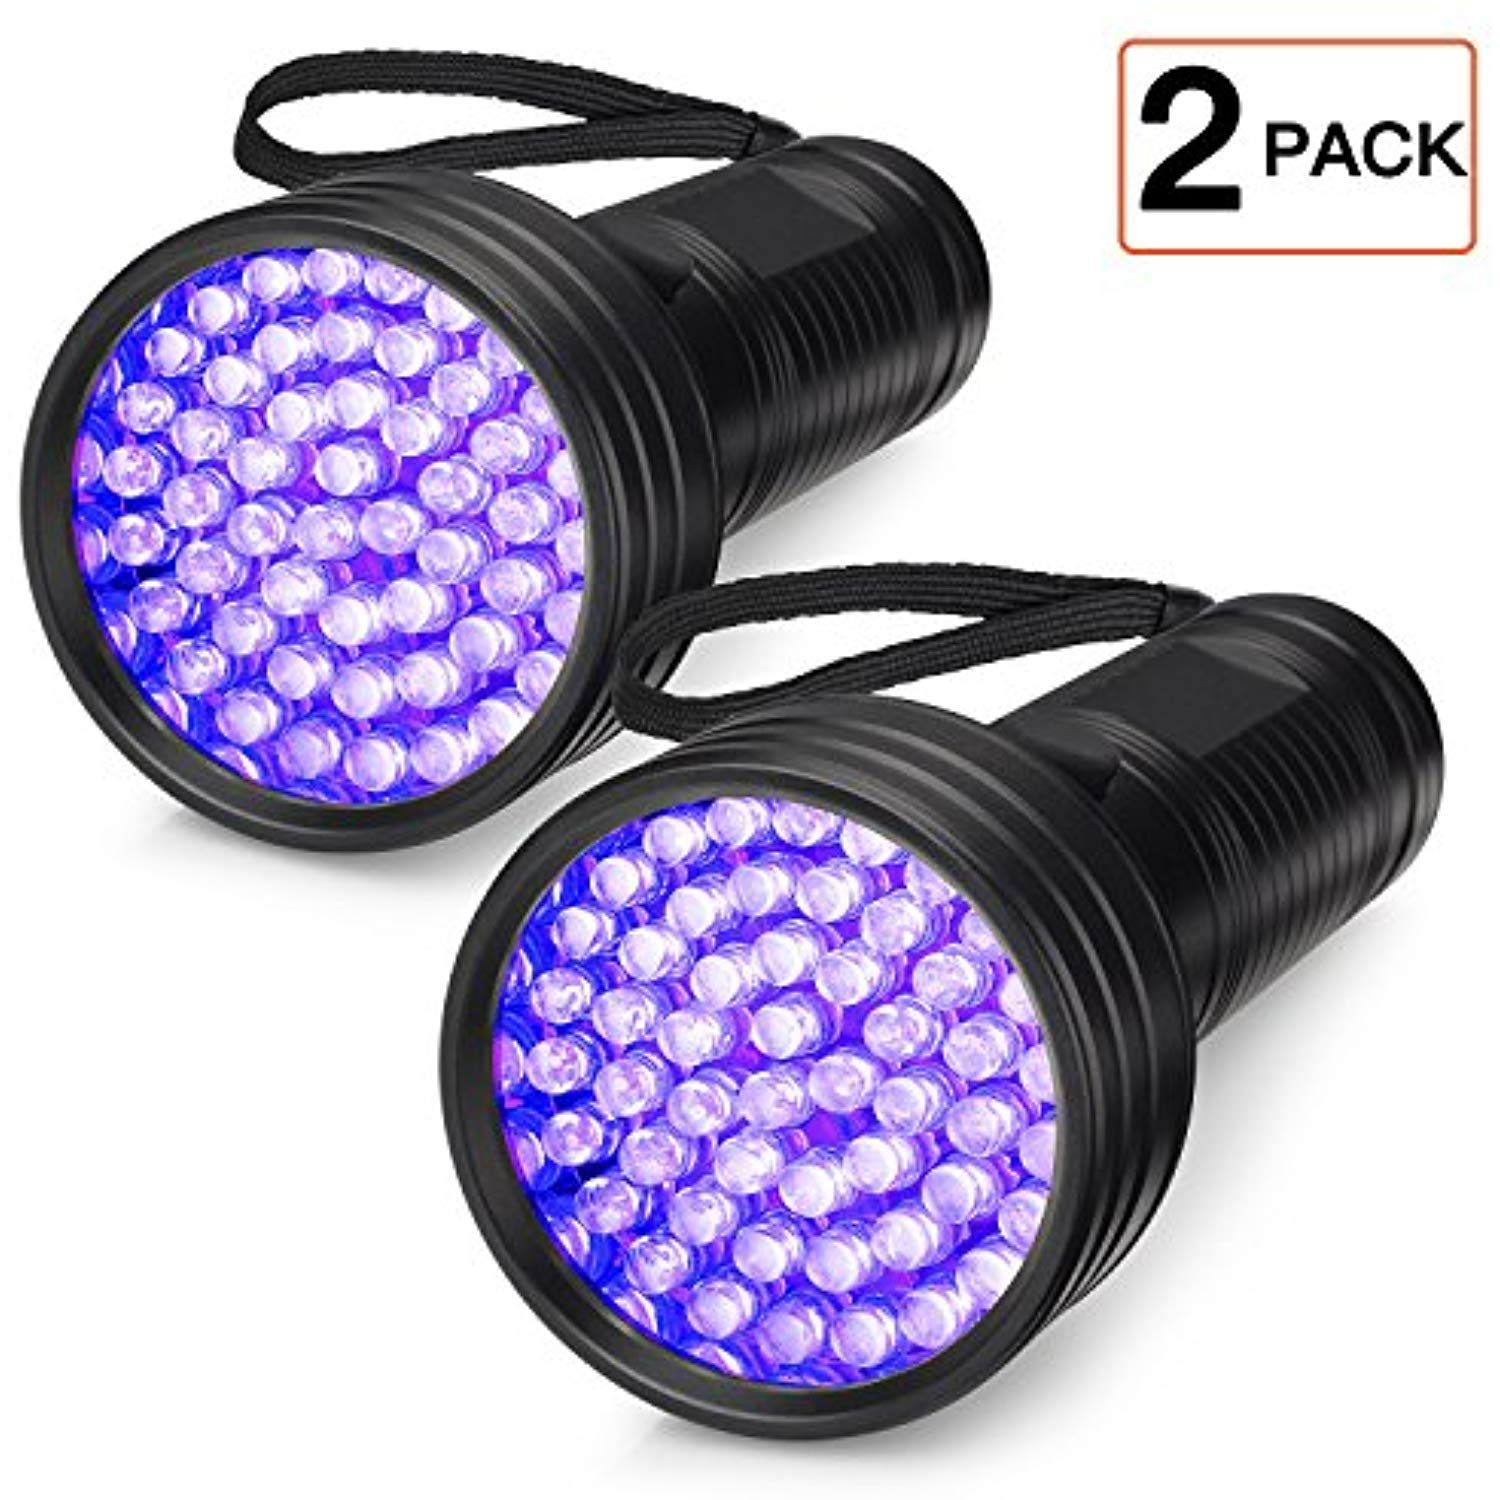 UV Flashlight Black Light, FOLKSMATE 51 LED 395 nM